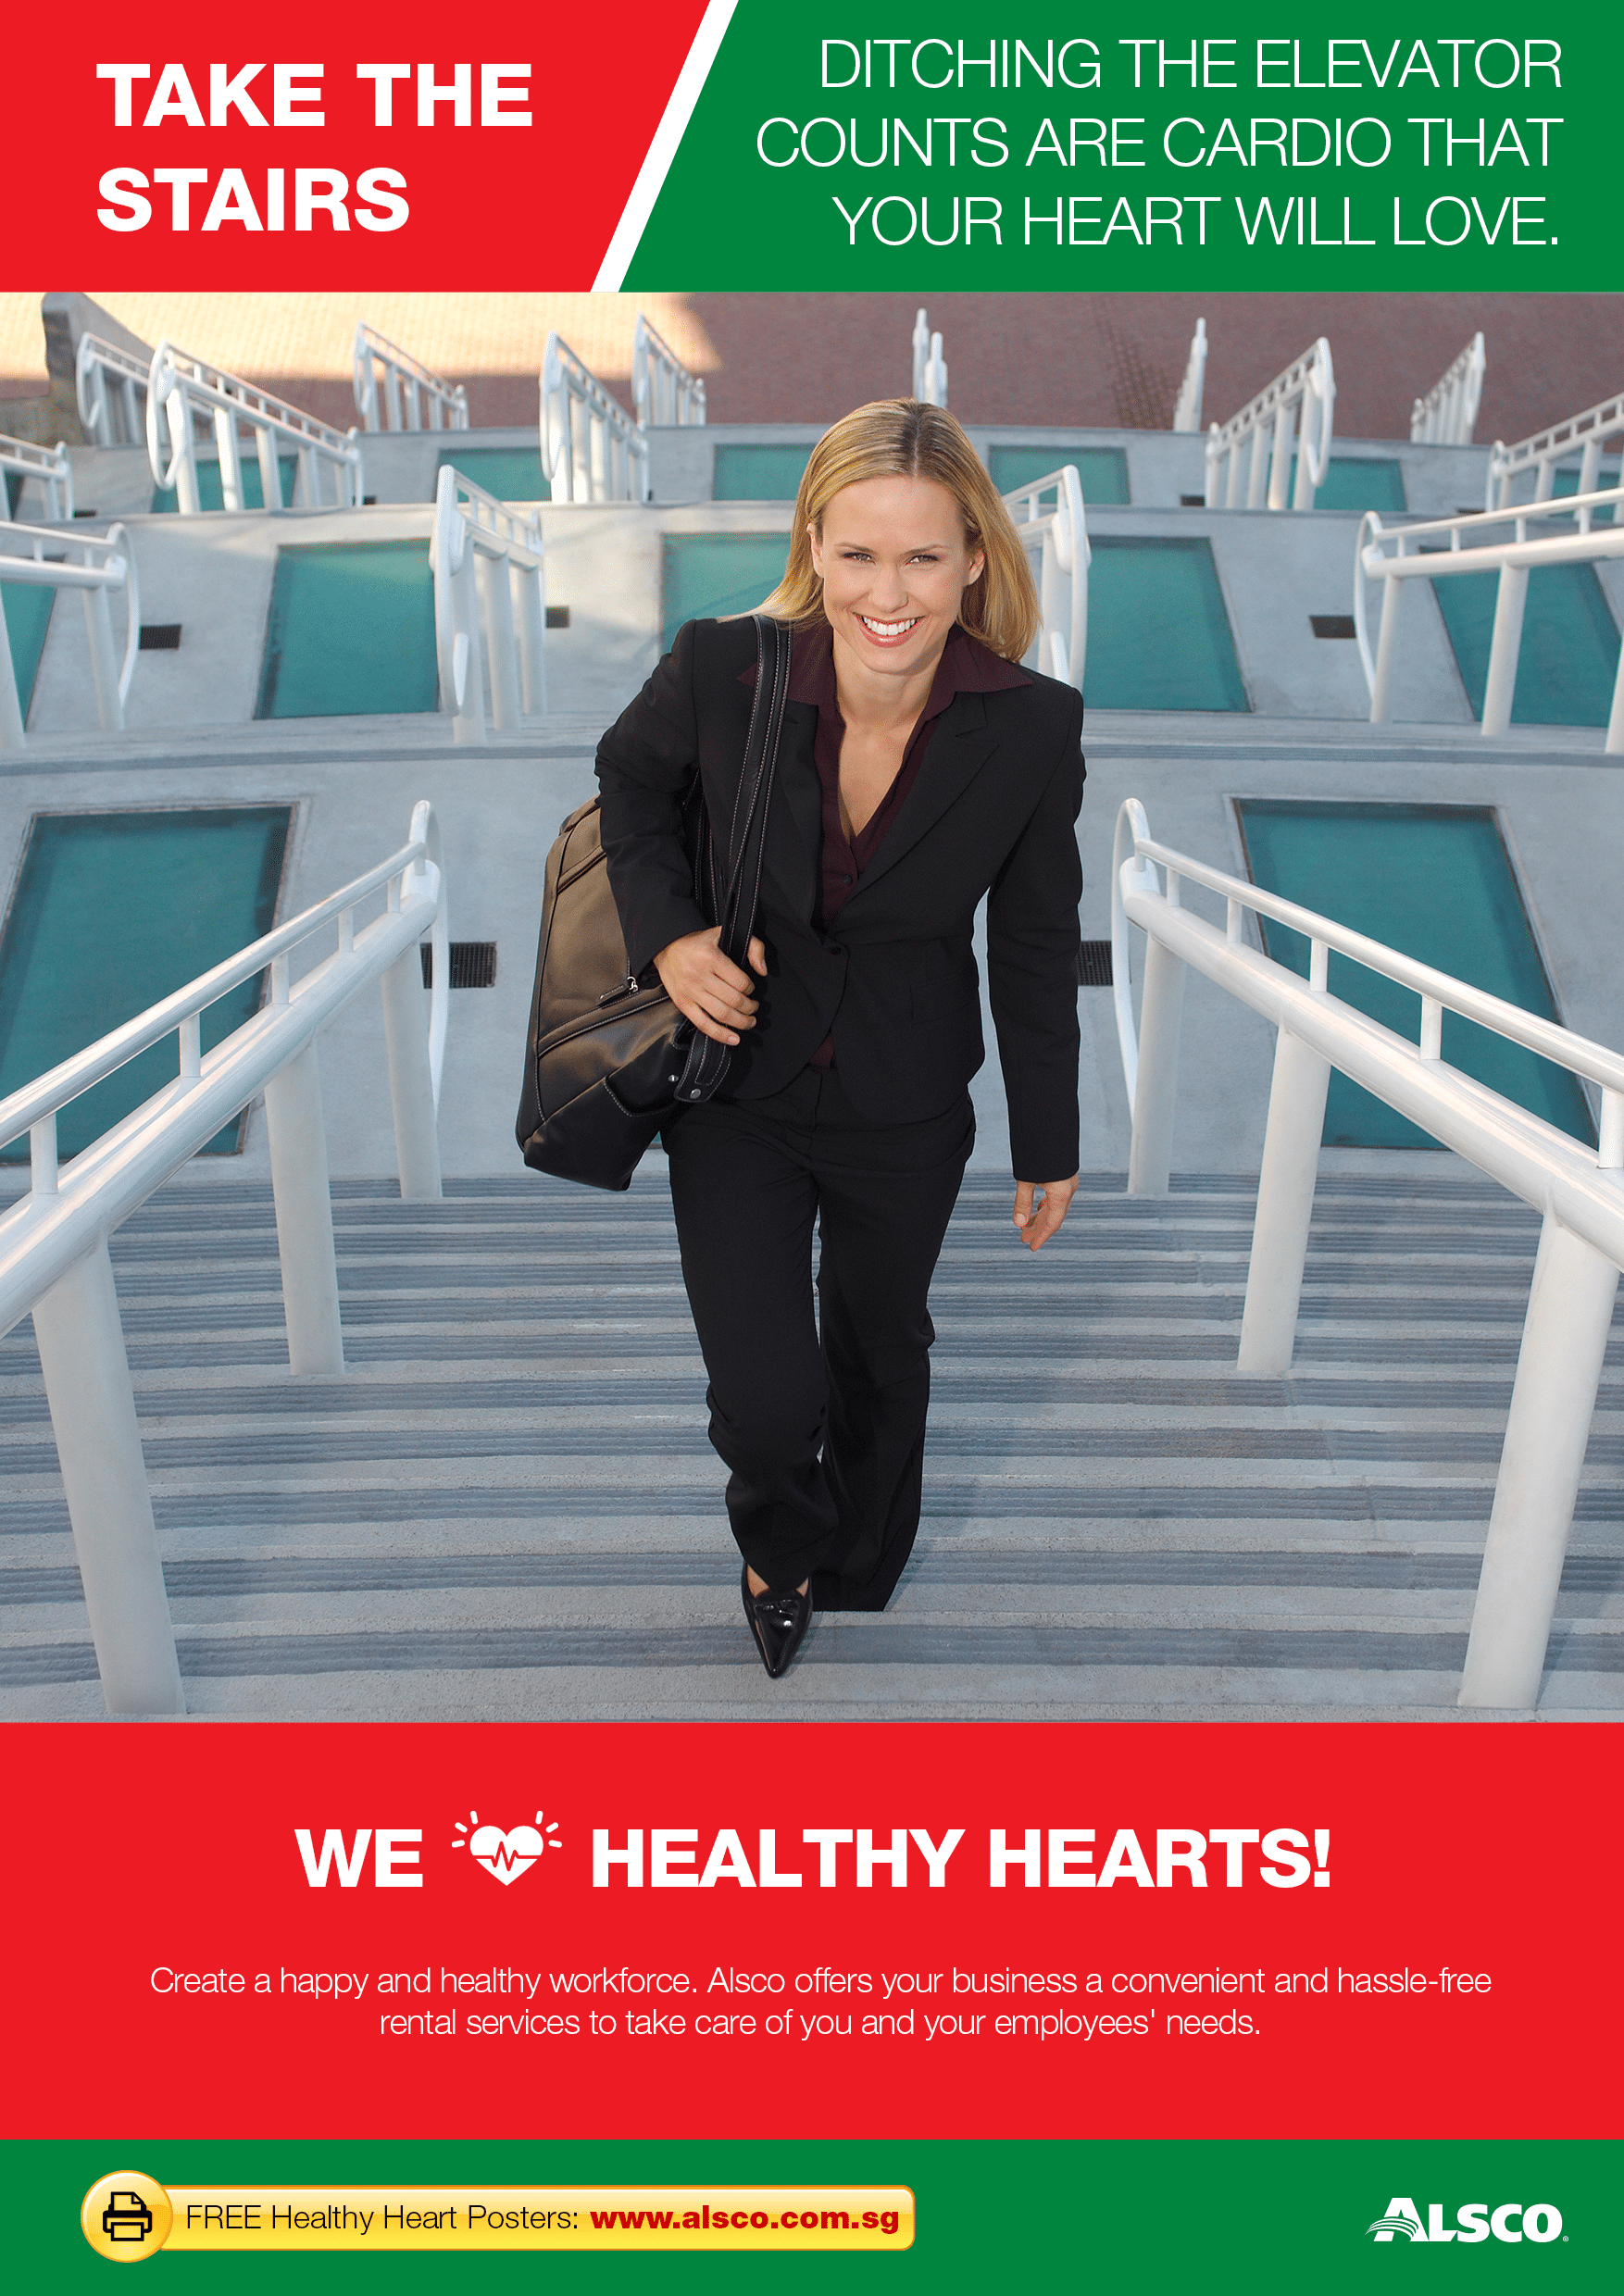 workplace heart health posters workplace ables alsco do simple cardio exercises take the stairs